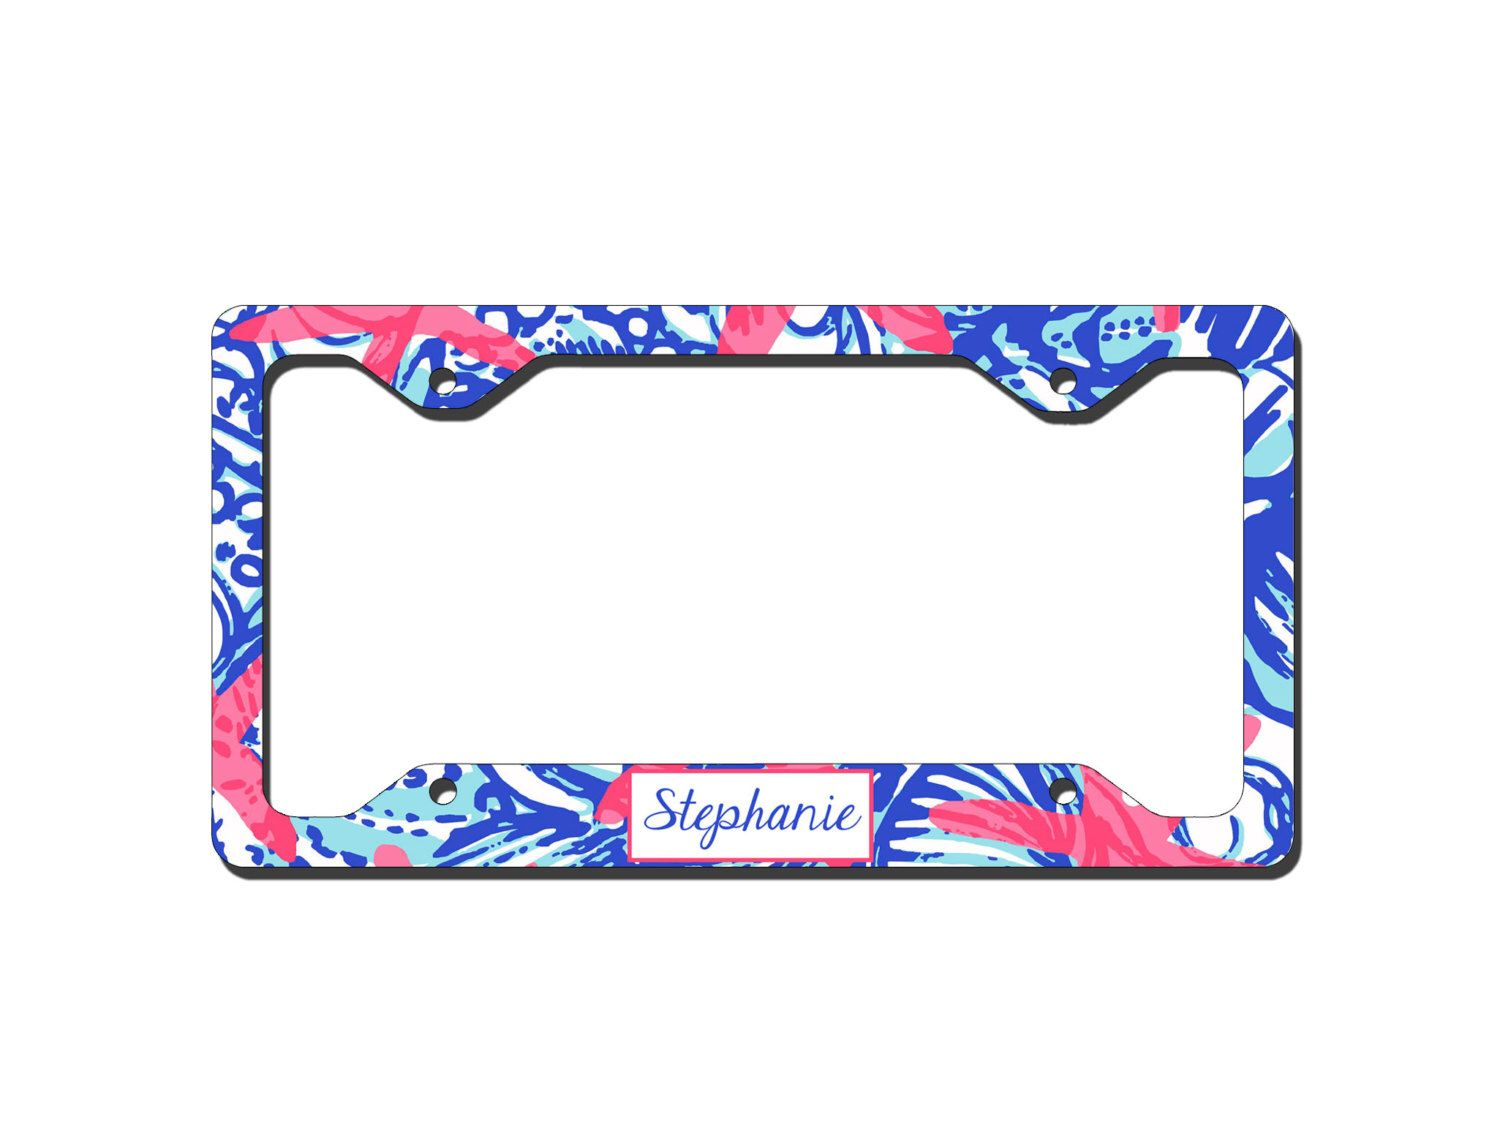 Monogrammed License Plate Frame - Lilly Pulitzer Inspired ...